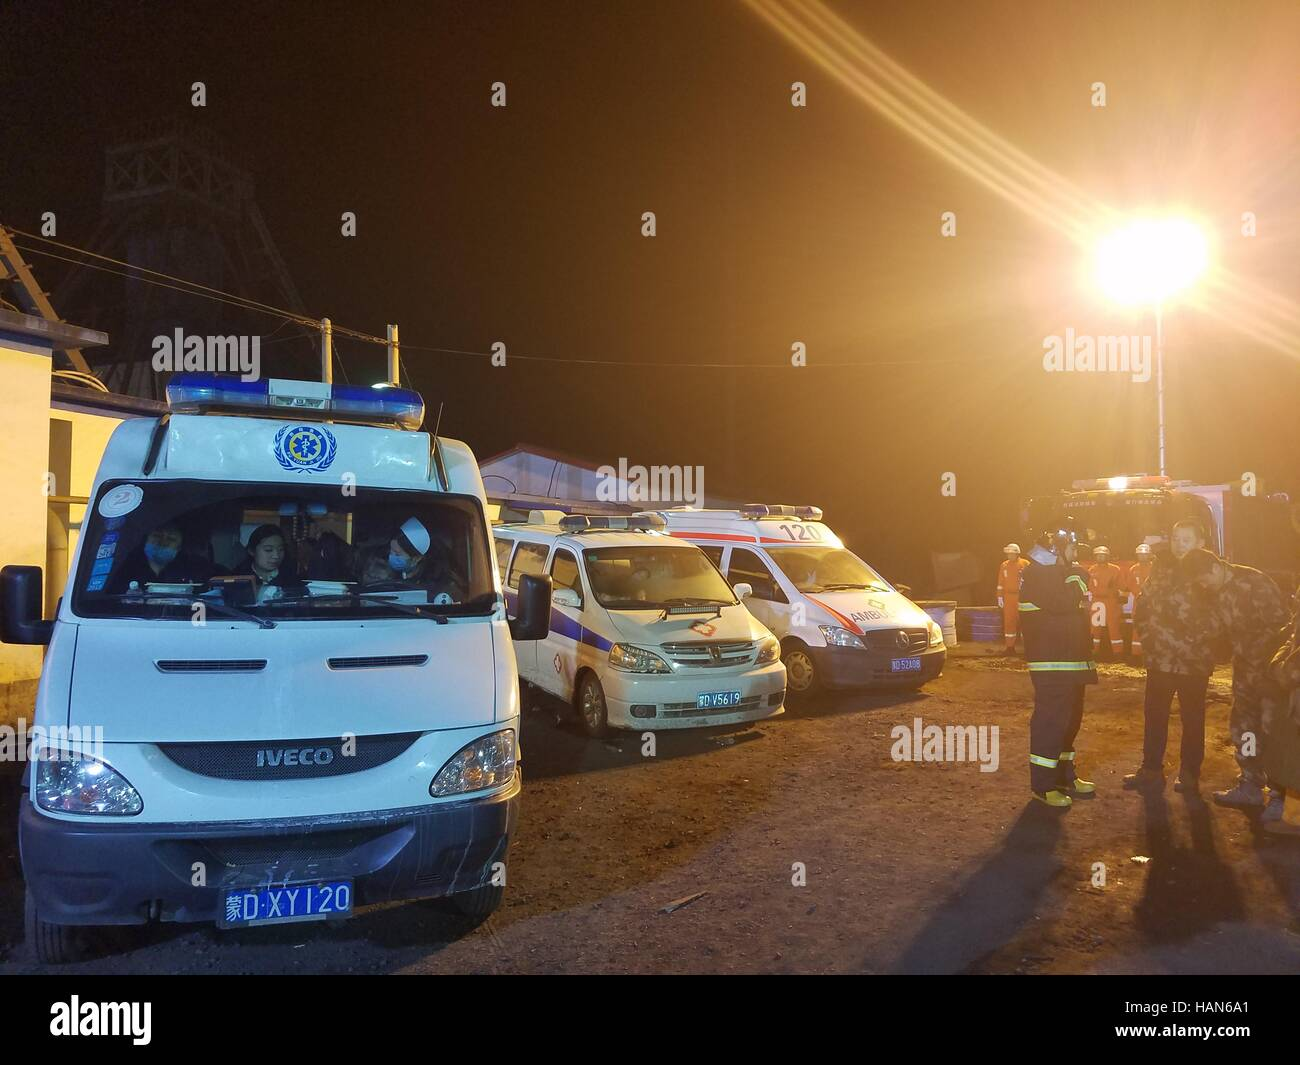 Chifeng. 3rd Dec, 2016. Photo taken by mobilephone shows rescuers and vehicles at the site of a coal mine accident - Stock Image